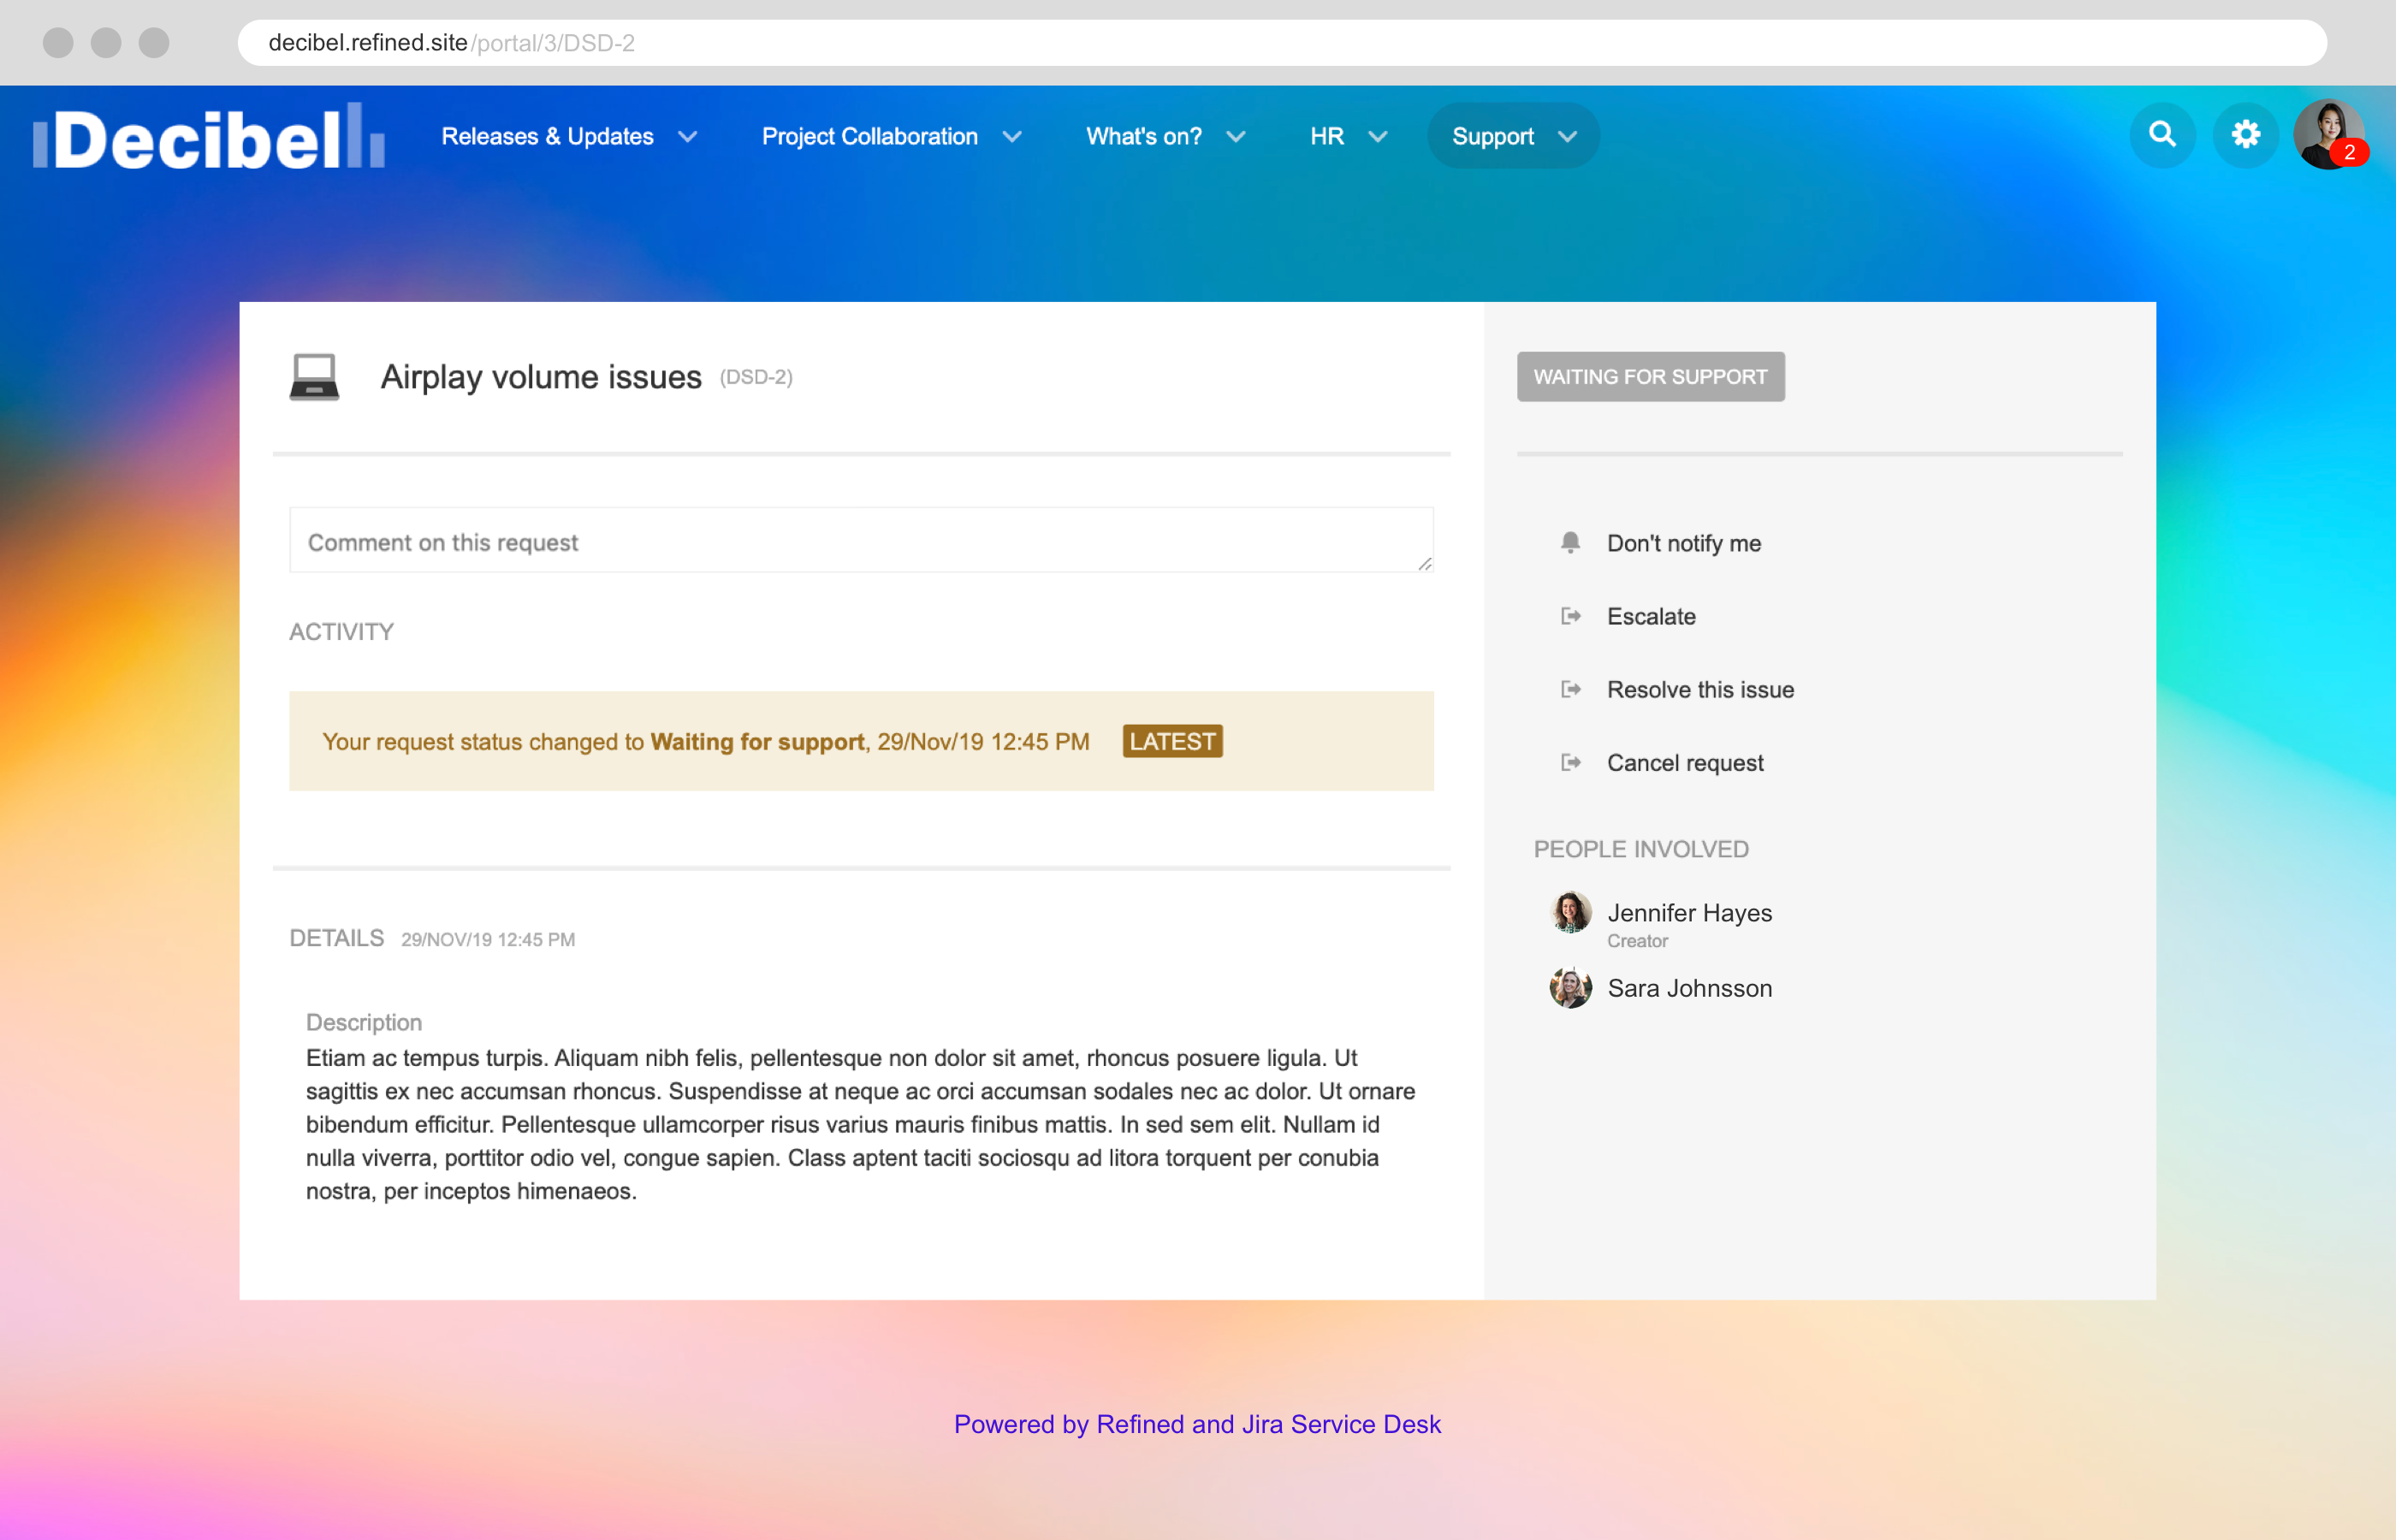 <h3>Jira for the whole organization</h3> <p>With Refined's intuitive user friendly interface, Jira is easily extended to the whole organization. Customers access branded, customized, engaging sites directly connected to Jira, while agents, administrators and day-to-day Jira users operate in standard Jira.</p>